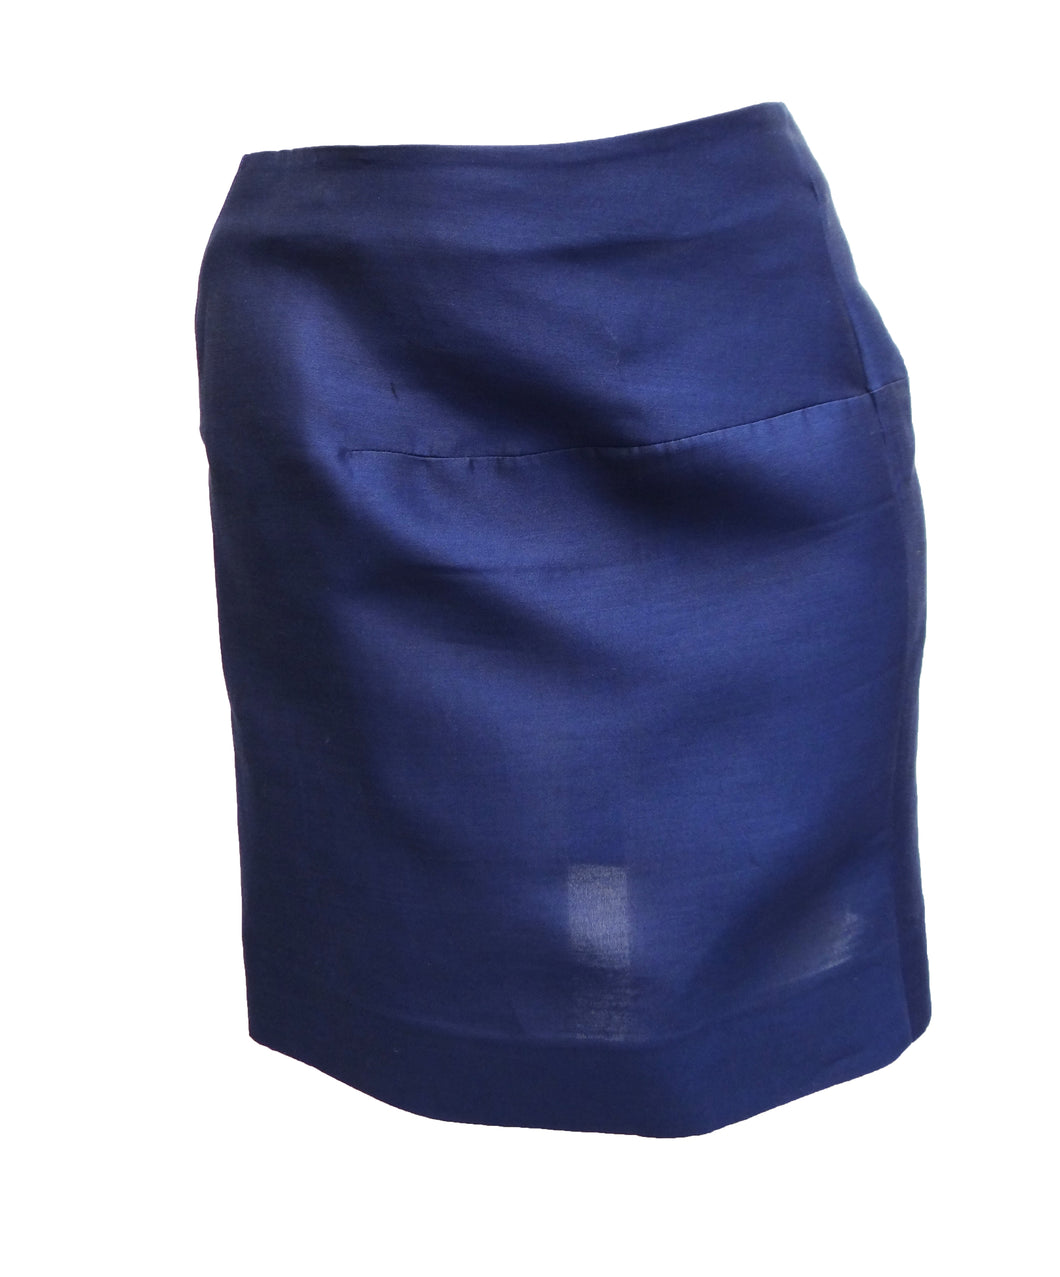 Marni Mini Skirt in Royal Blue Organza, UK8-10